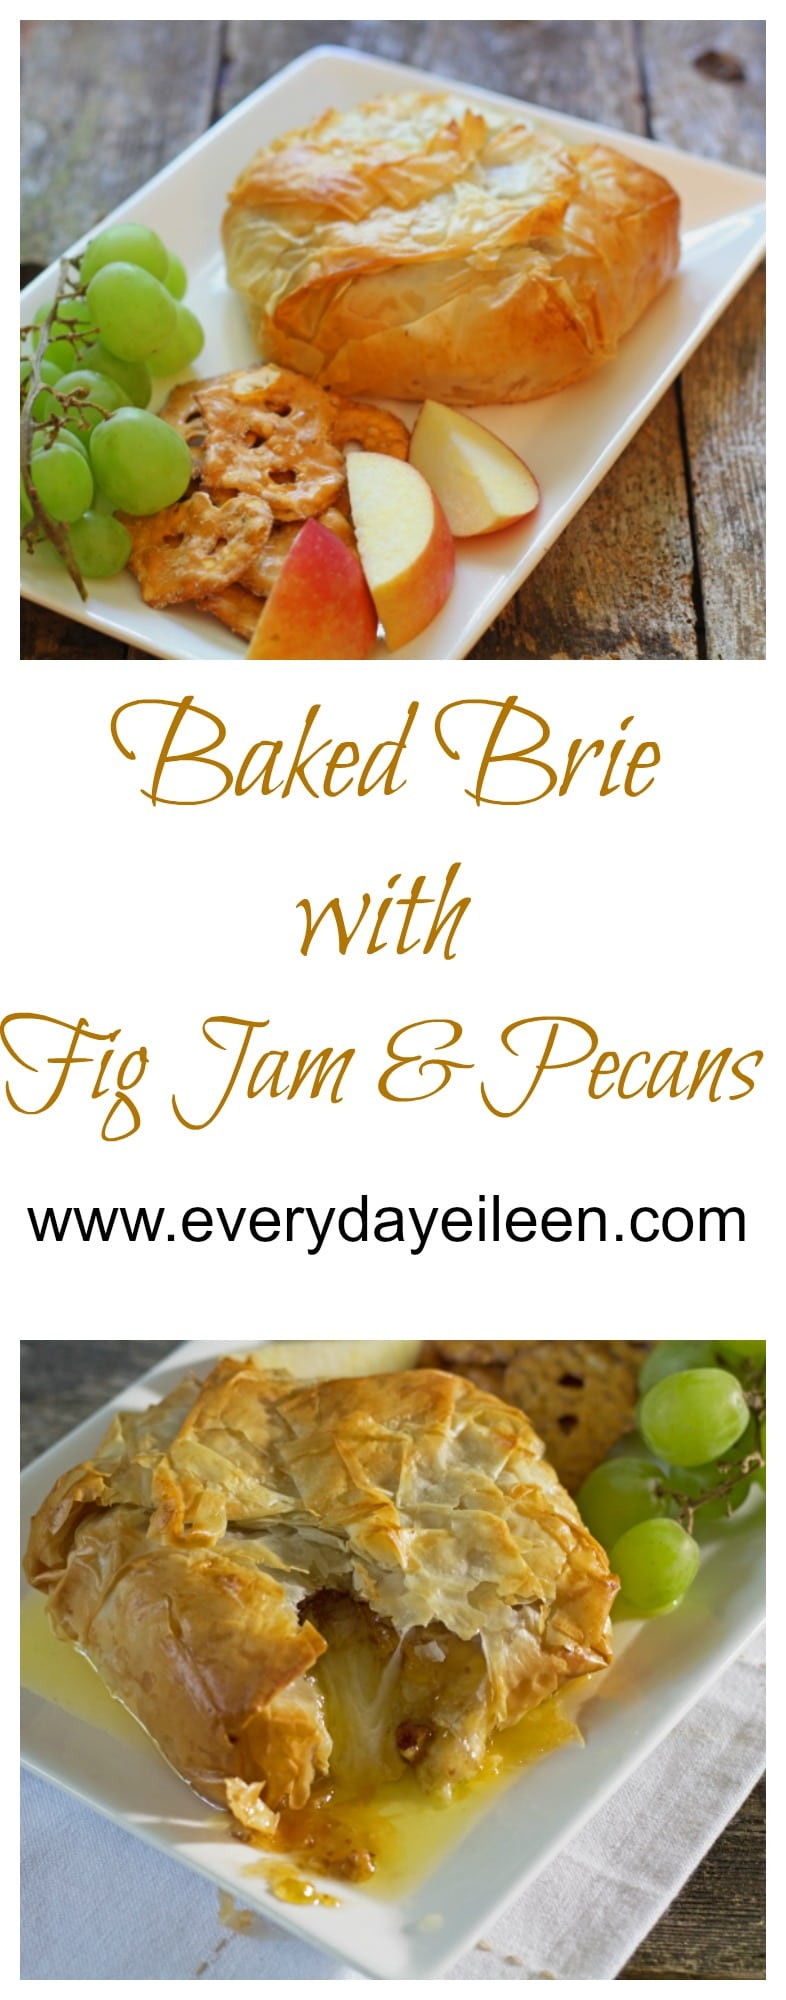 baked-brie-with-fig-jam